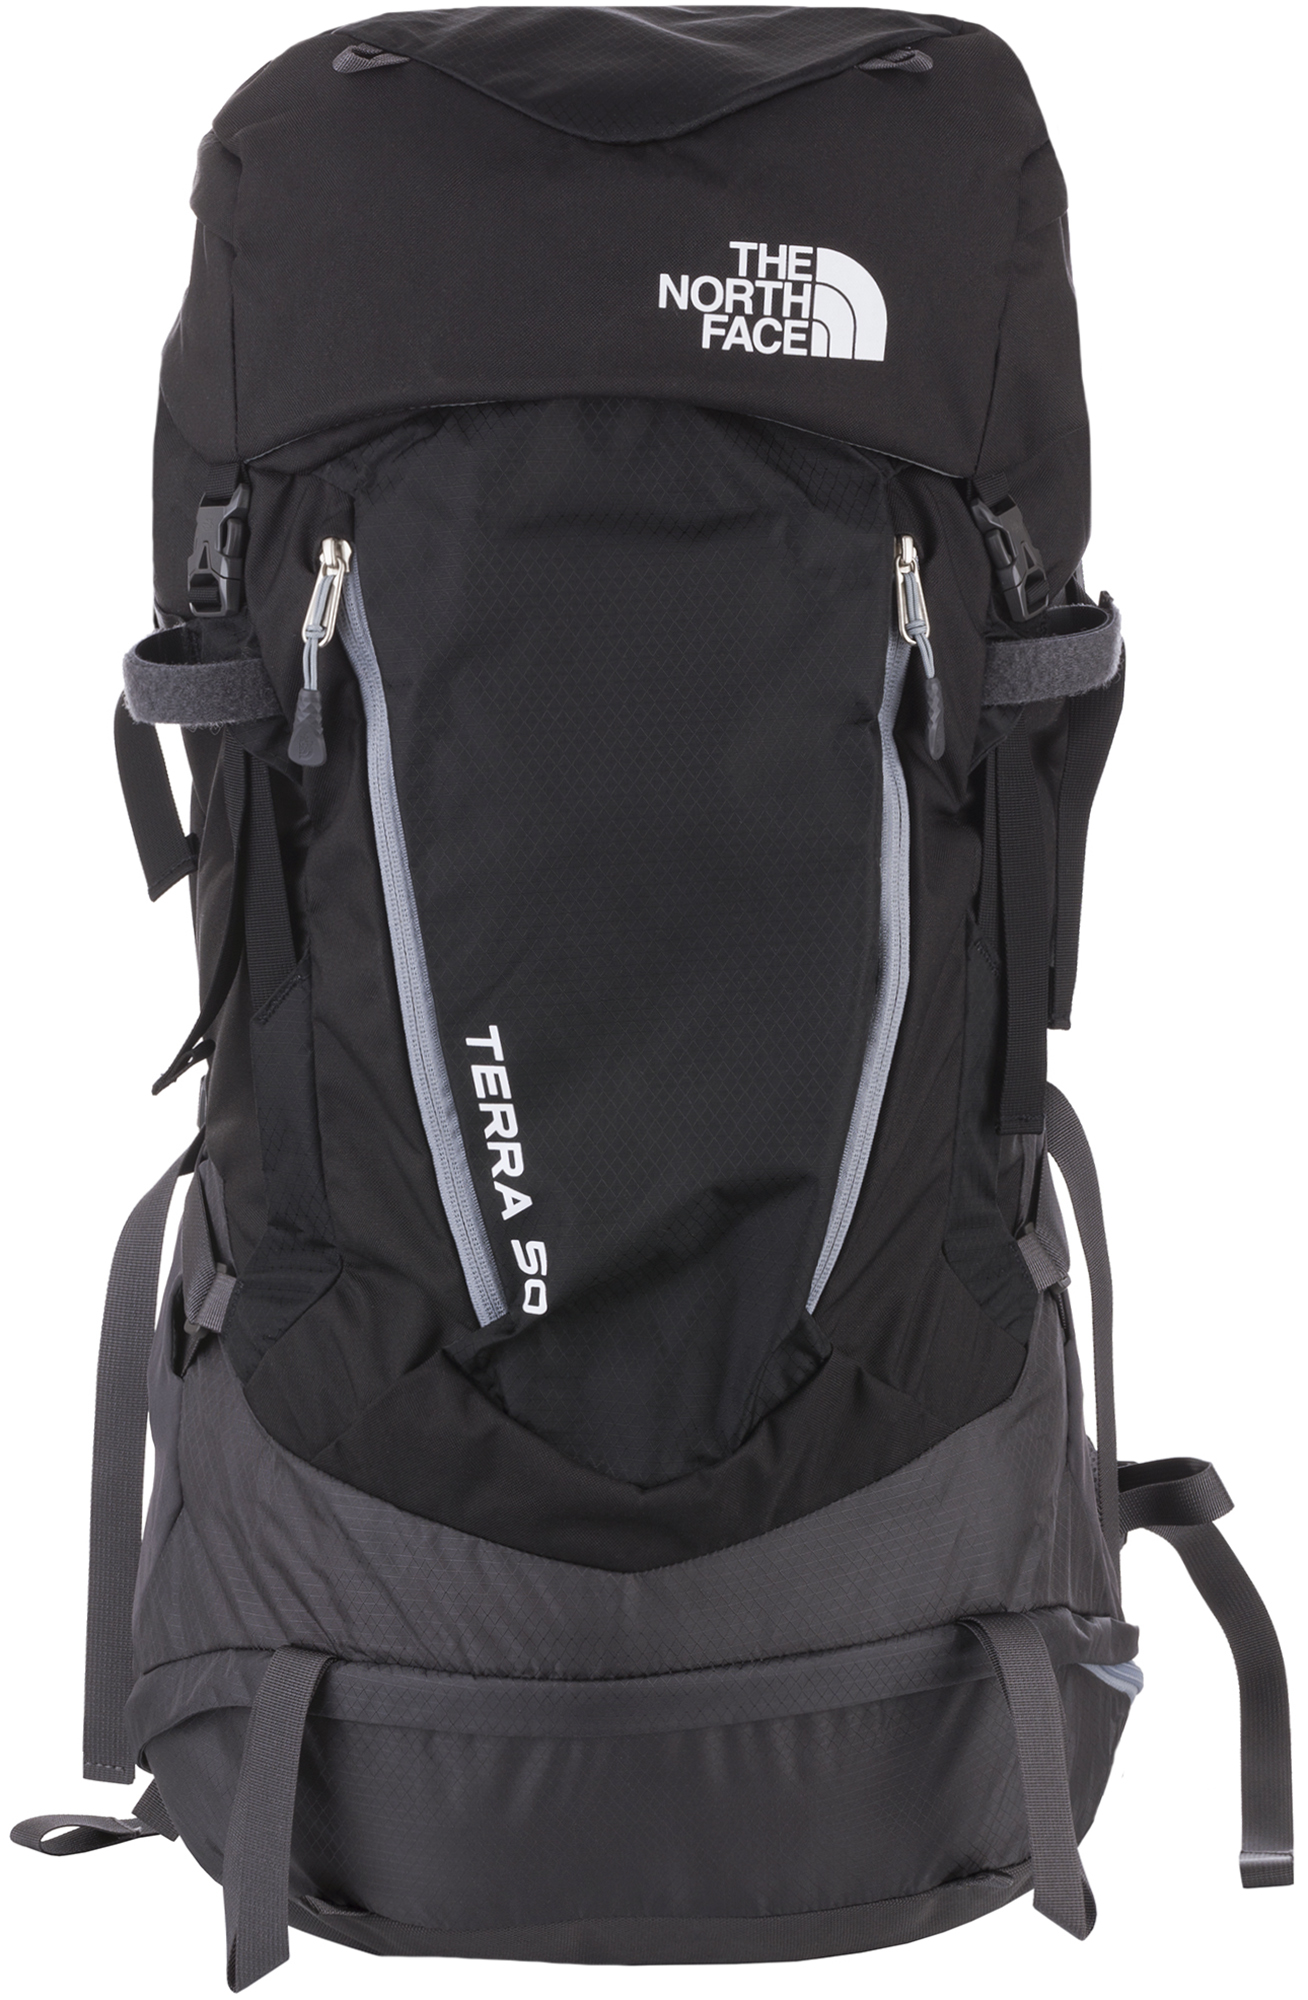 The North Face Рюкзак The North Face TERRA 50 the north face олимпийка